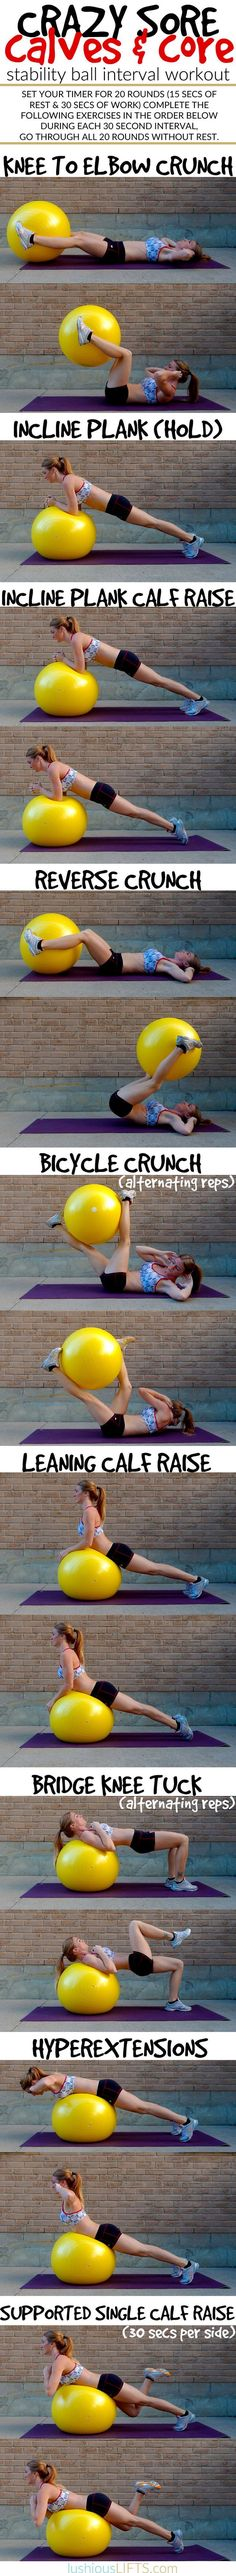 Crazy Sore Calves & Core {Stability Ball #Interval #Workout} || lushiousLIFTS.com - Tap the pin if you love super heroes too! Cause guess what? you will LOVE these super hero fitness shirts!